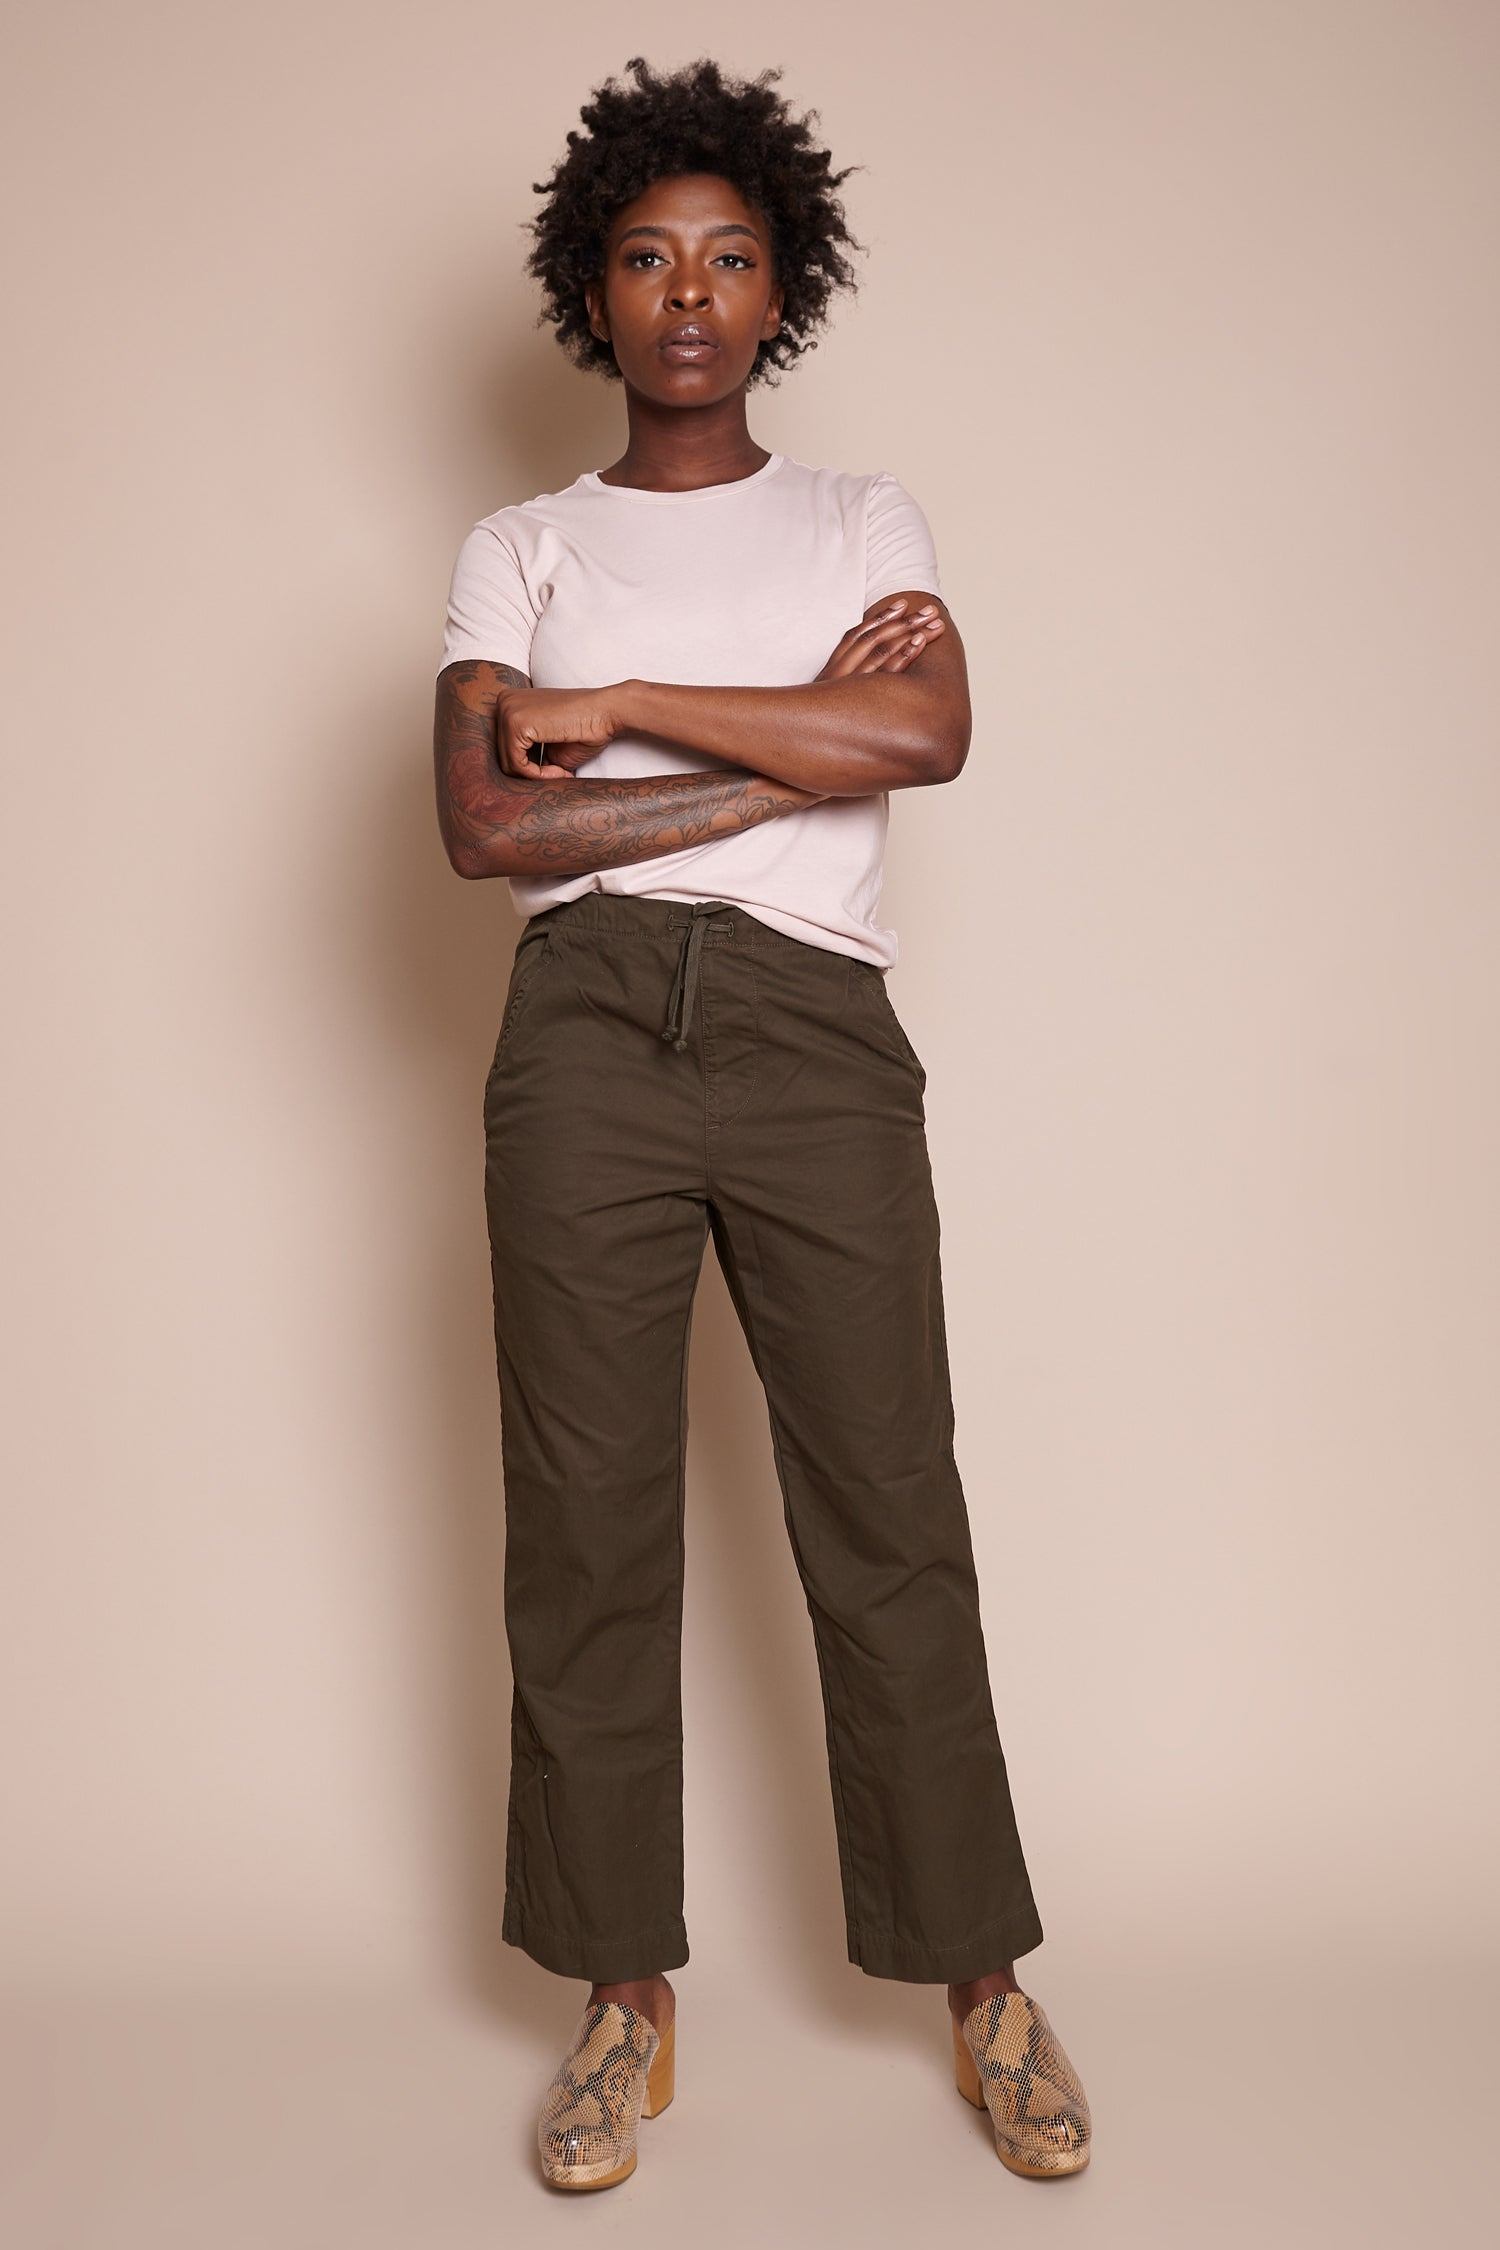 Save Khaki United Comfort Chino in Olive - Vert & Vogue